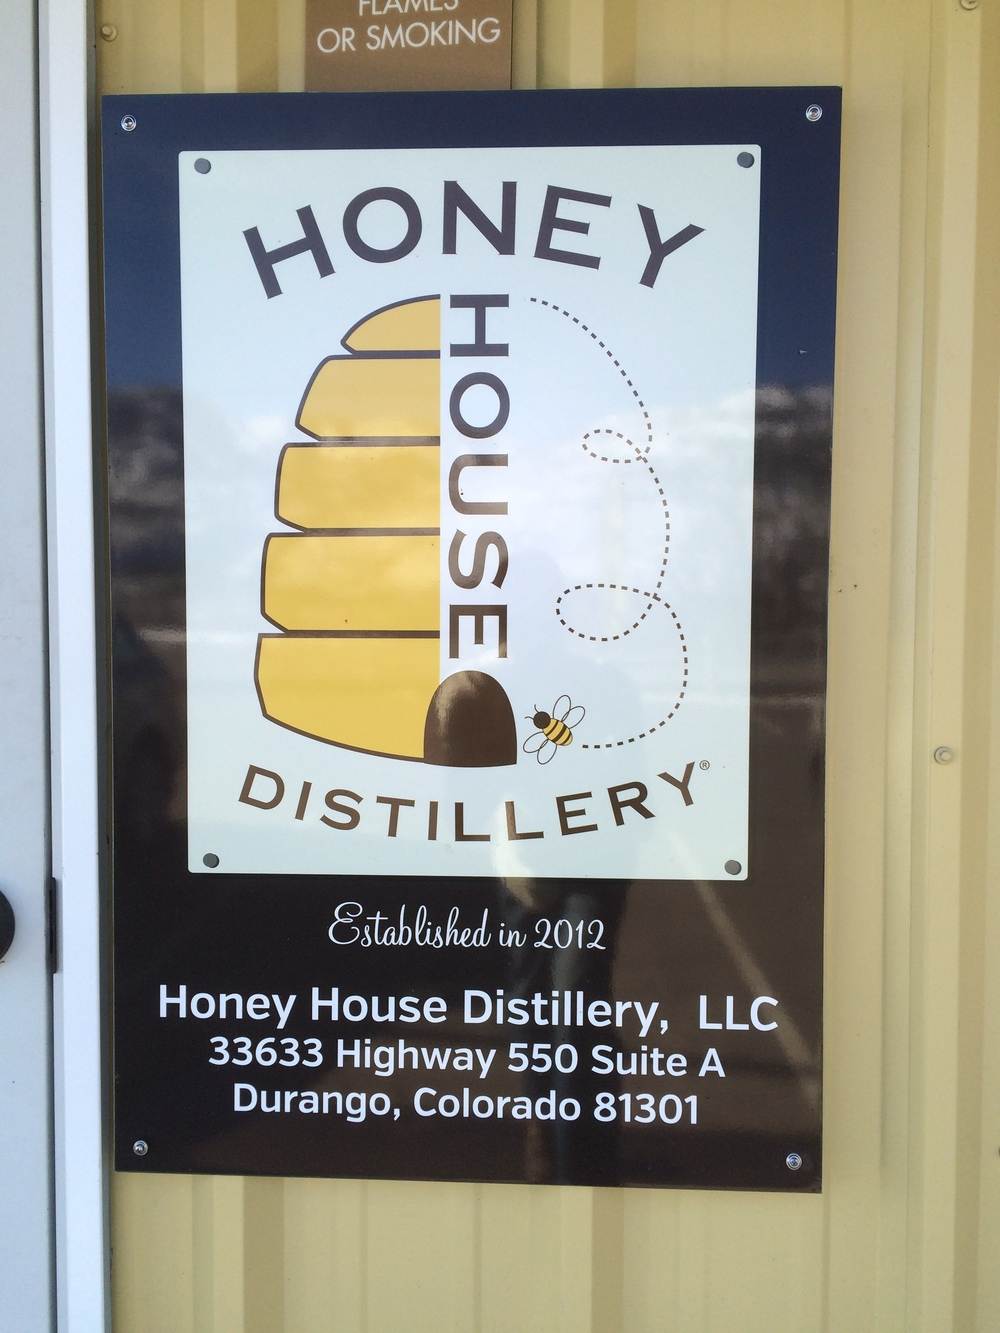 Honey + Whiskey. Great idea!